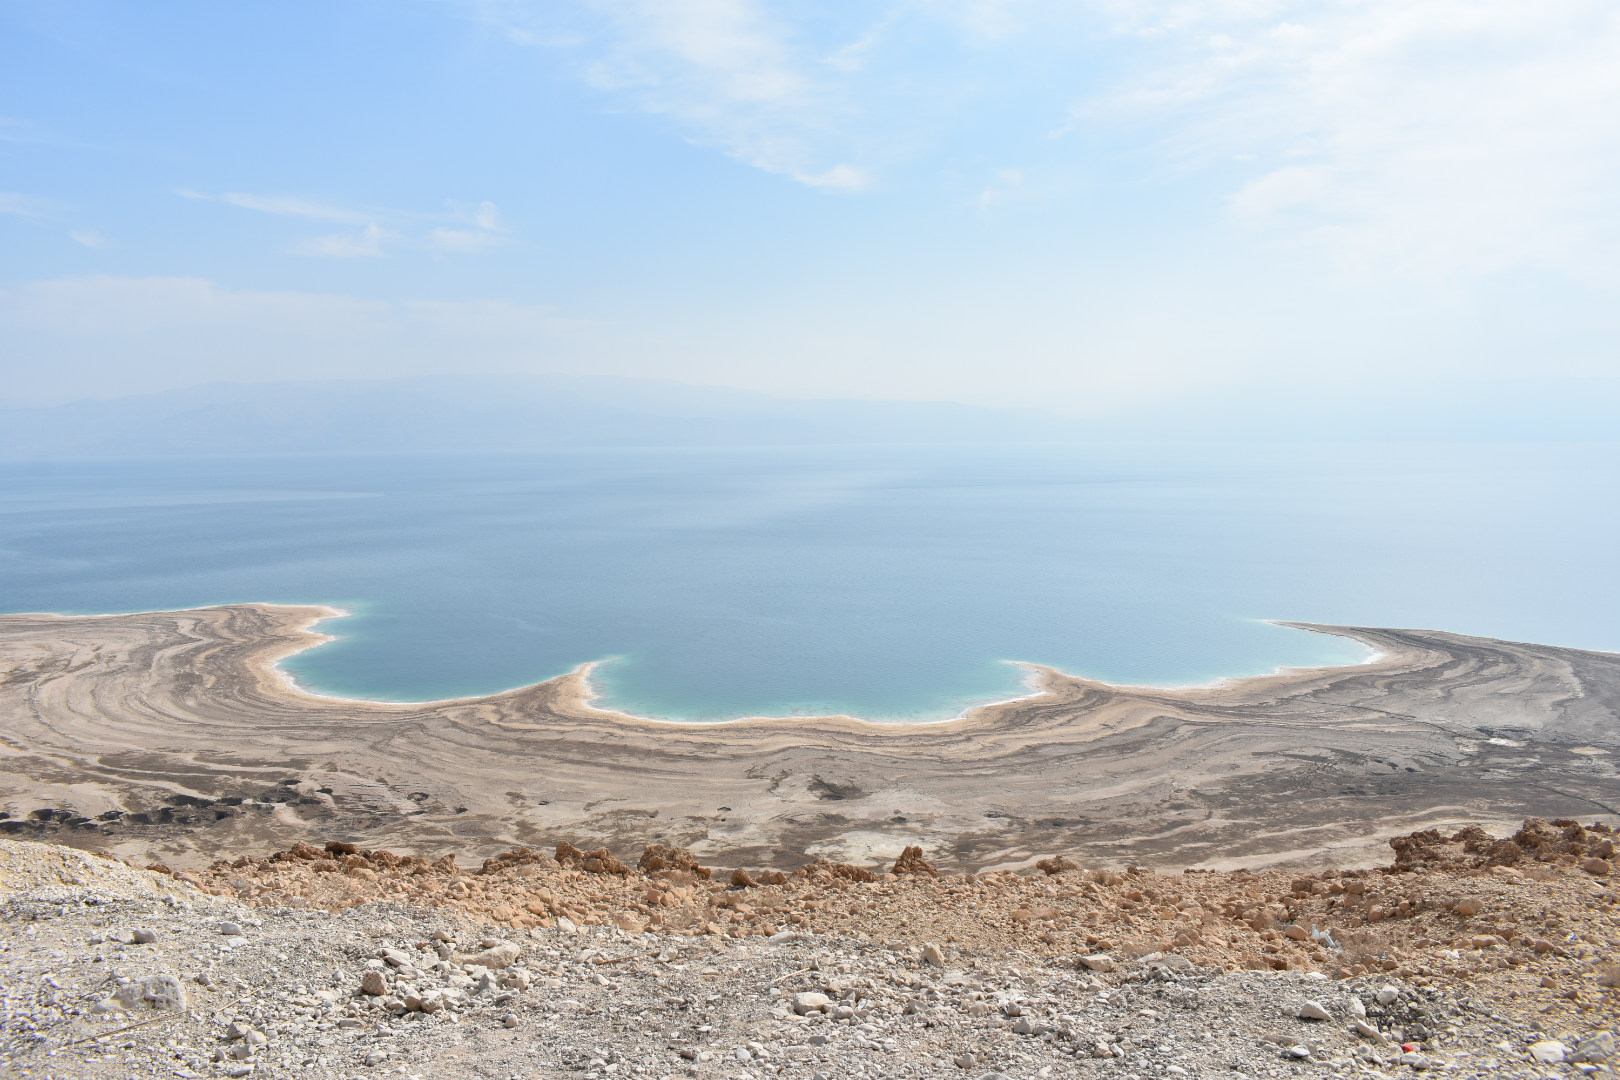 The Dead Sea - Places in Israel You Must Visit - The Traveler's Journey Blog